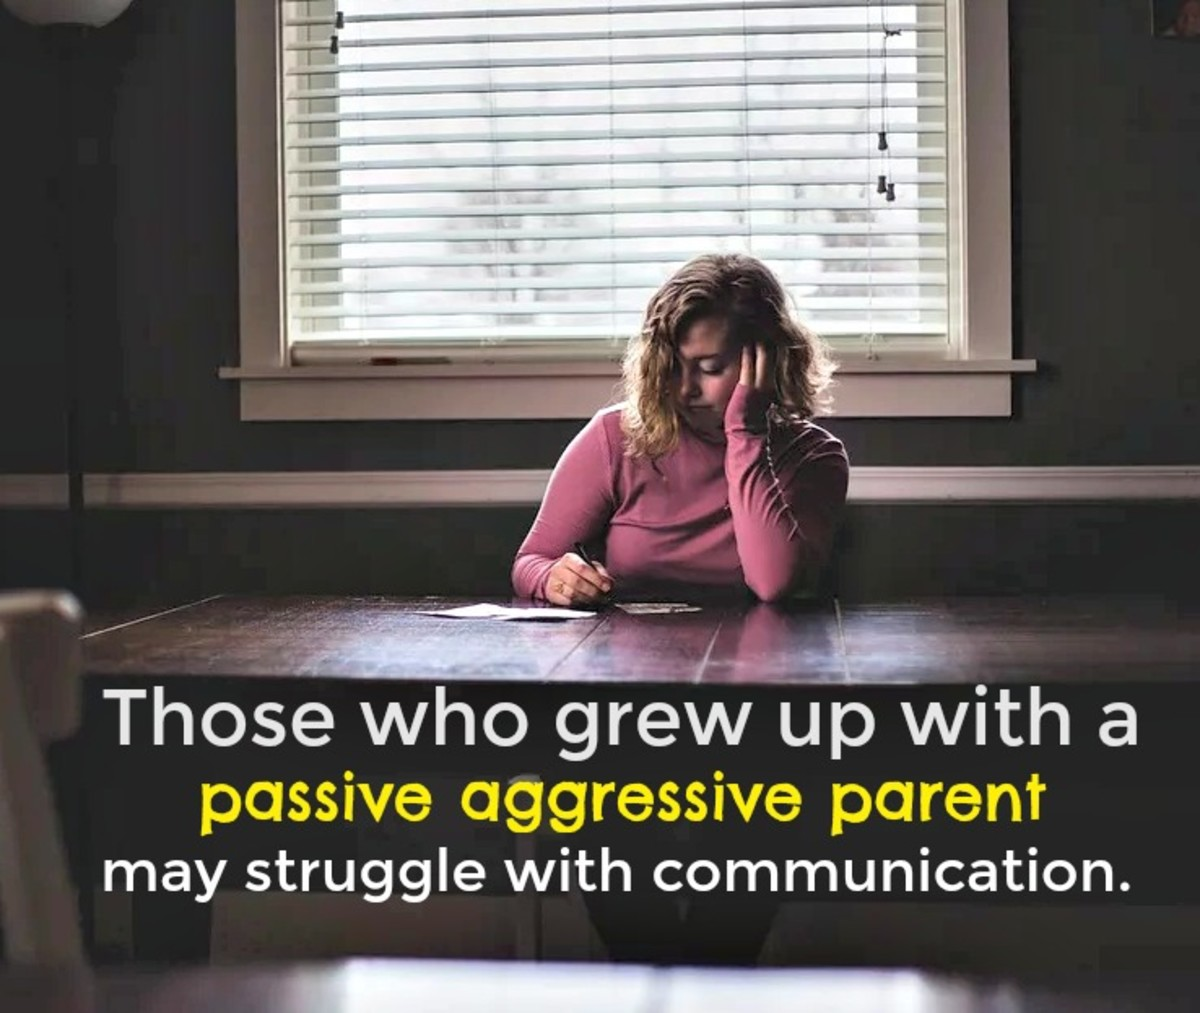 How a Passive Aggressive Parent Can Negatively Impact Your Life